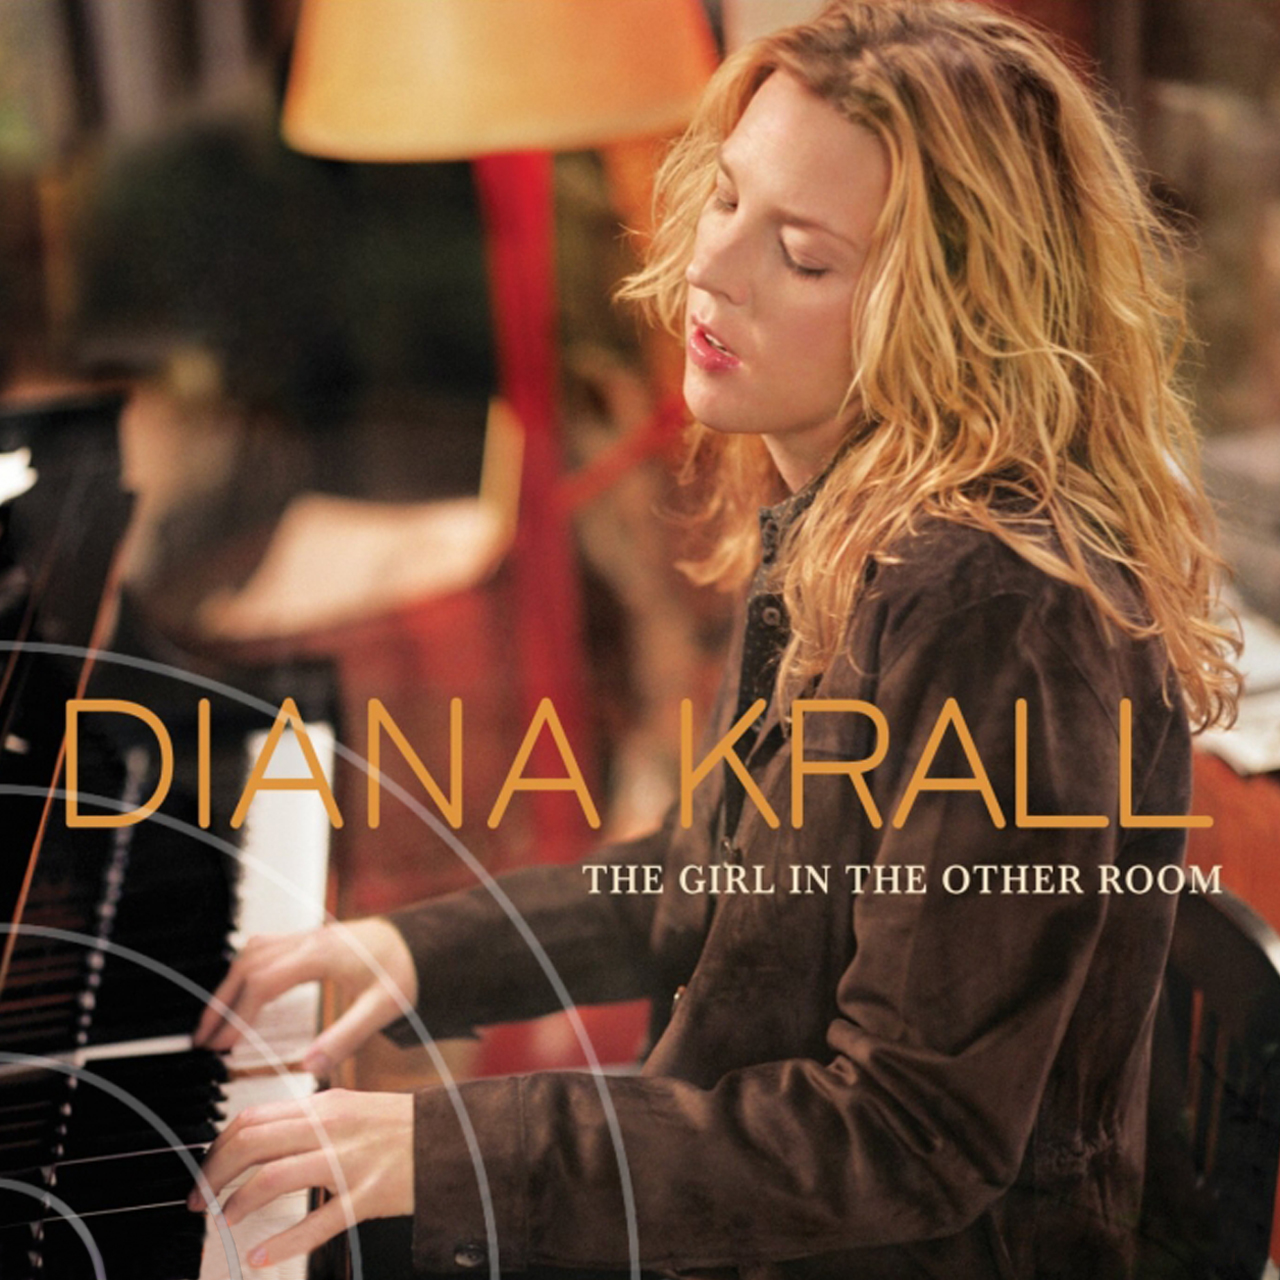 Cd Diana Krall: The Girl In The Other Room